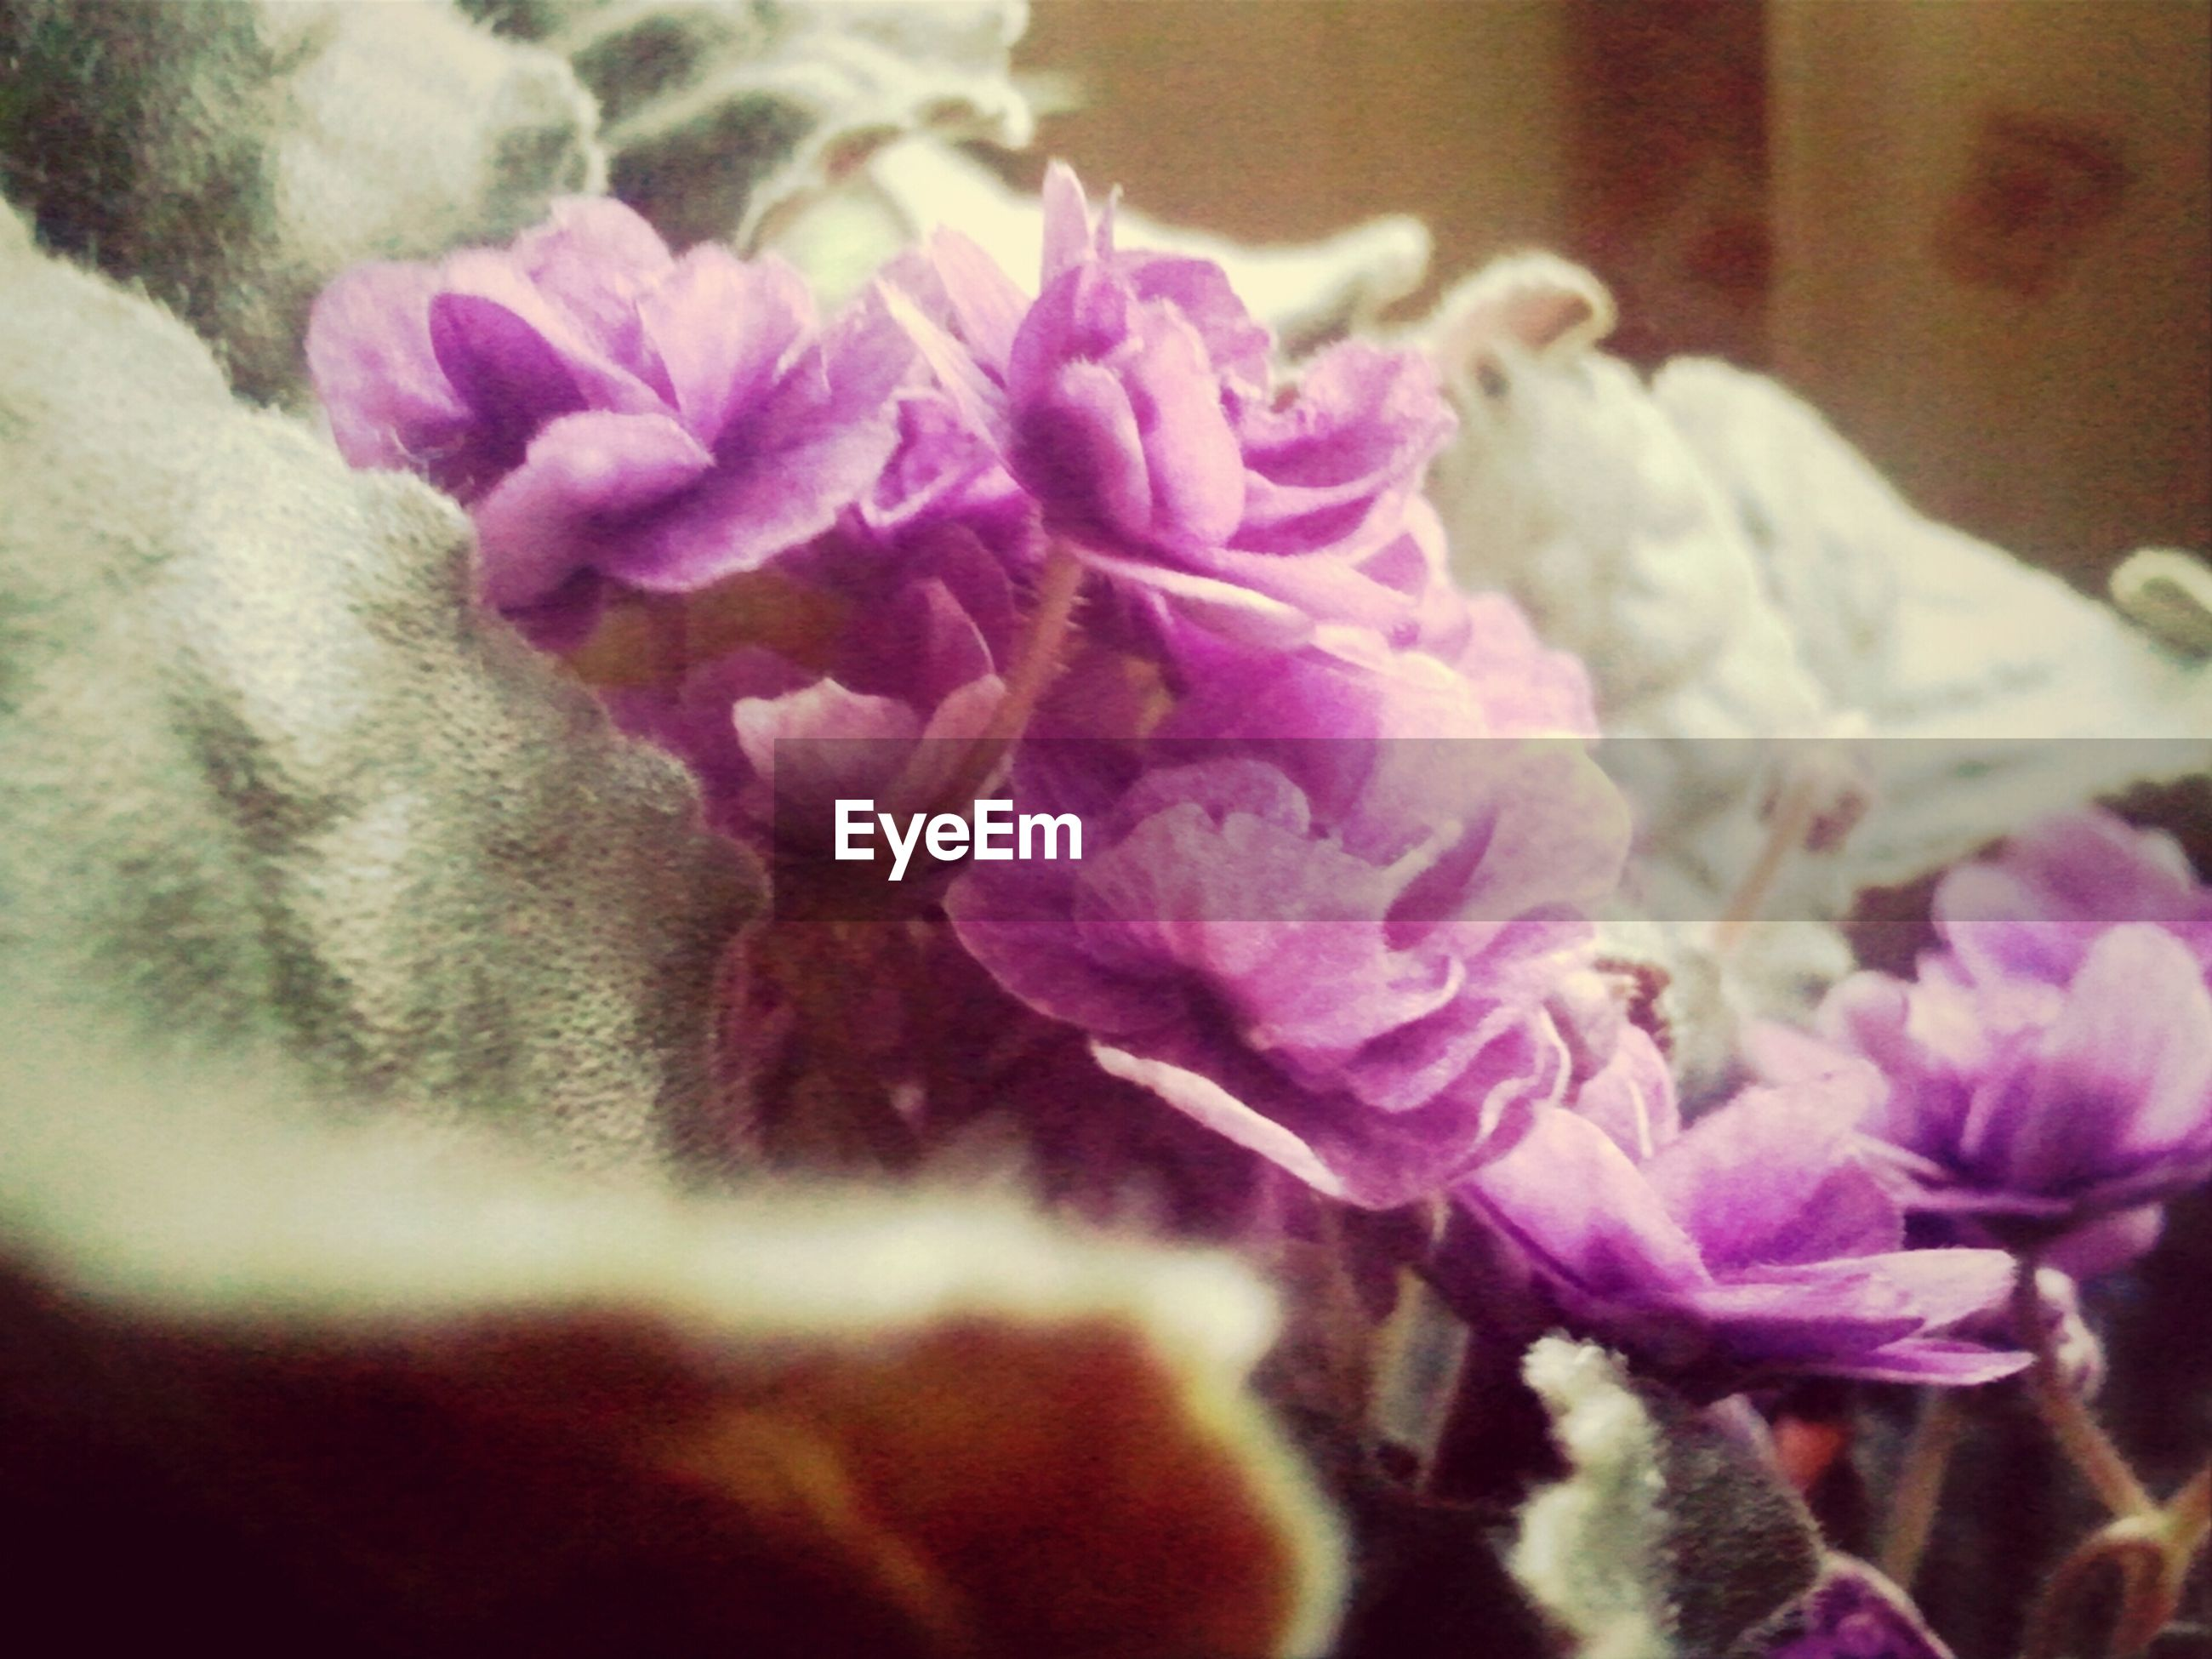 flower, petal, freshness, fragility, close-up, flower head, indoors, beauty in nature, focus on foreground, pink color, growth, selective focus, nature, bunch of flowers, purple, blooming, softness, plant, no people, rose - flower